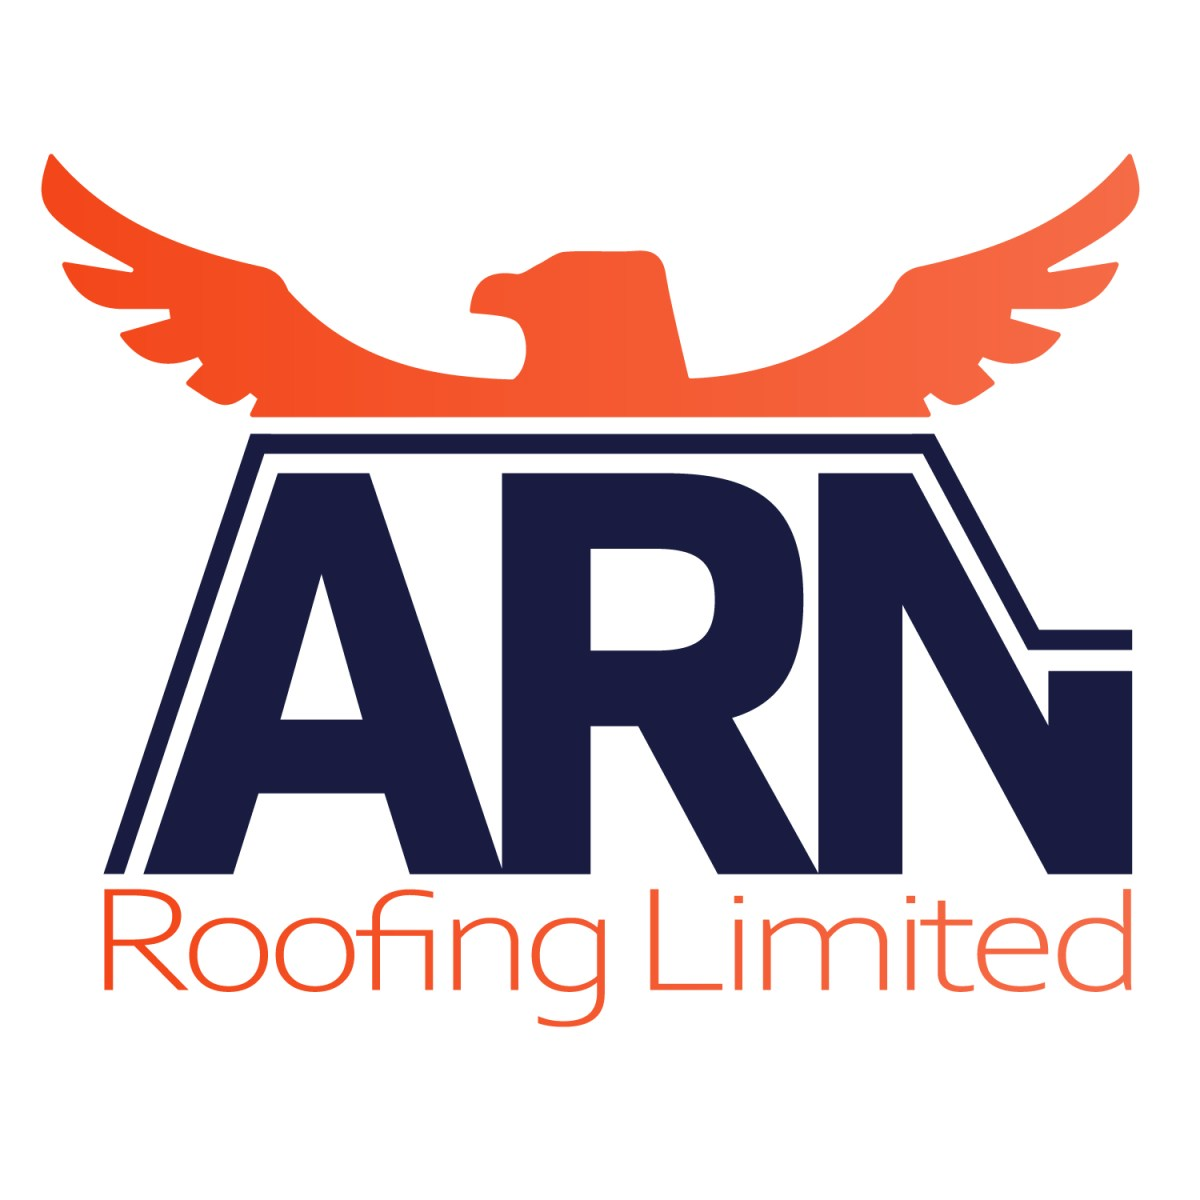 ARN ROOFING LIMITED LOGO